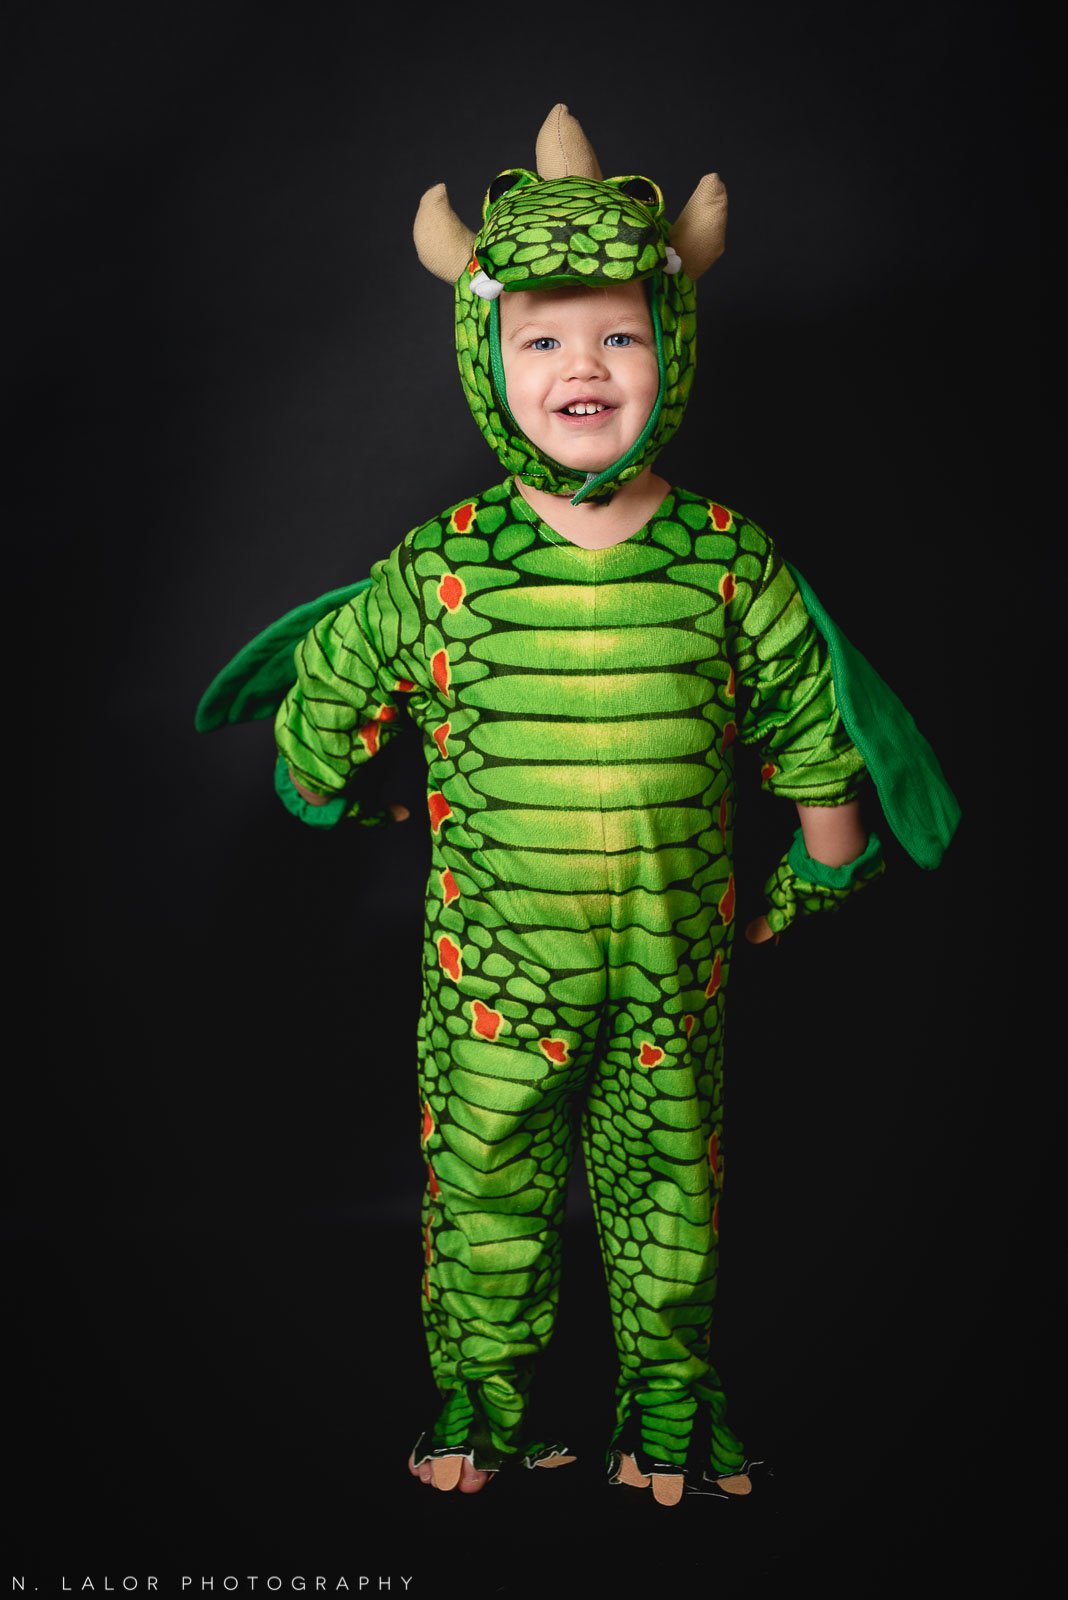 Toddler dragon costume! Kids Halloween costume portrait by N. Lalor Photography in Greenwich, Connecticut.